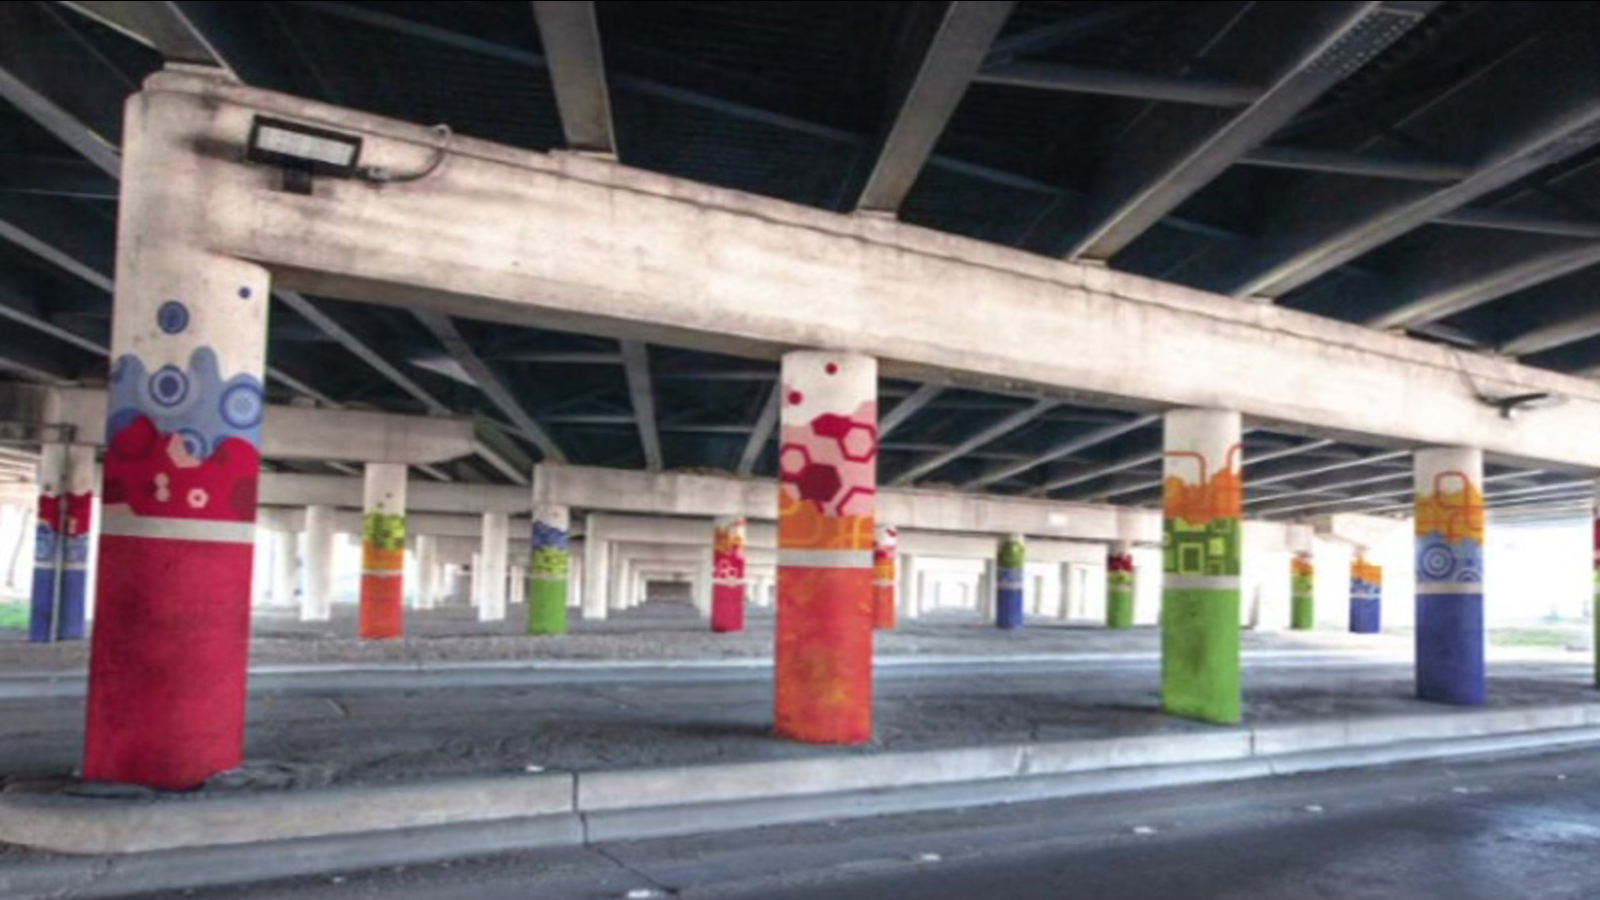 University of houston graffiti project beautifies part of i 45